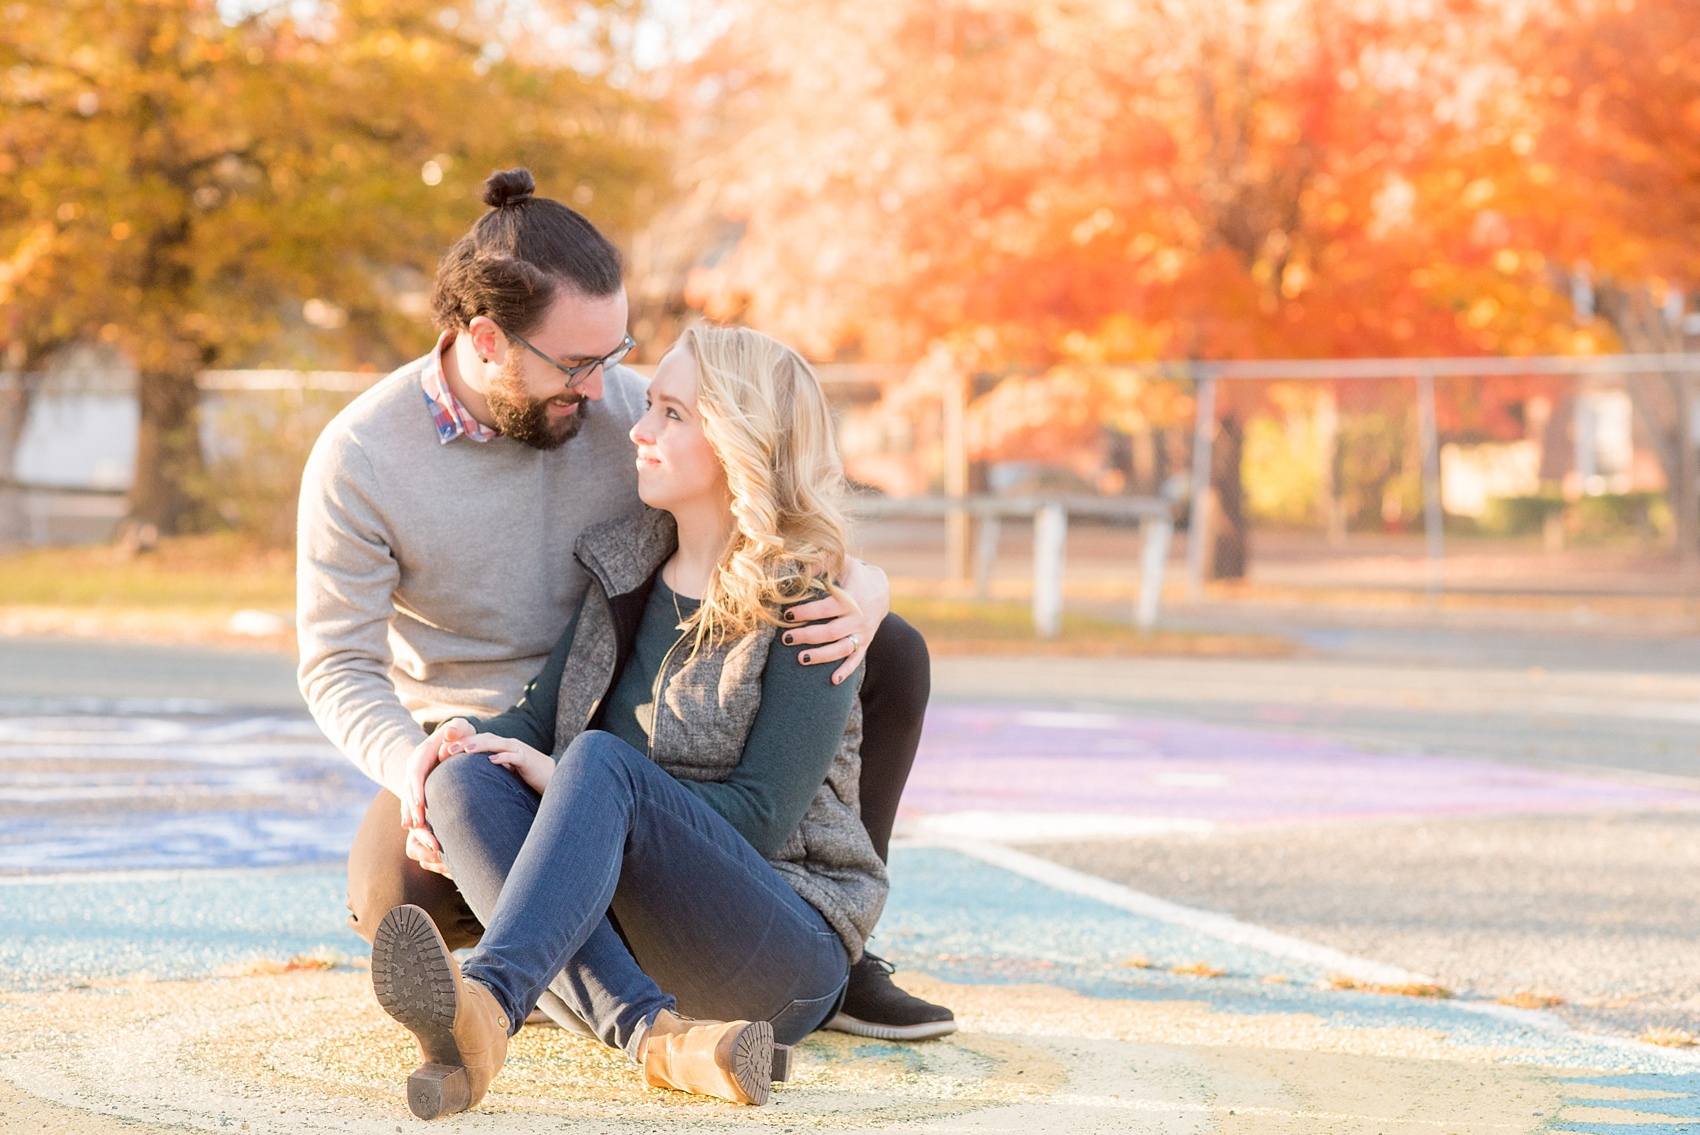 Mikkel Paige Photography photos of a Durham engagement session with colorful parking spaces and fall leaves.